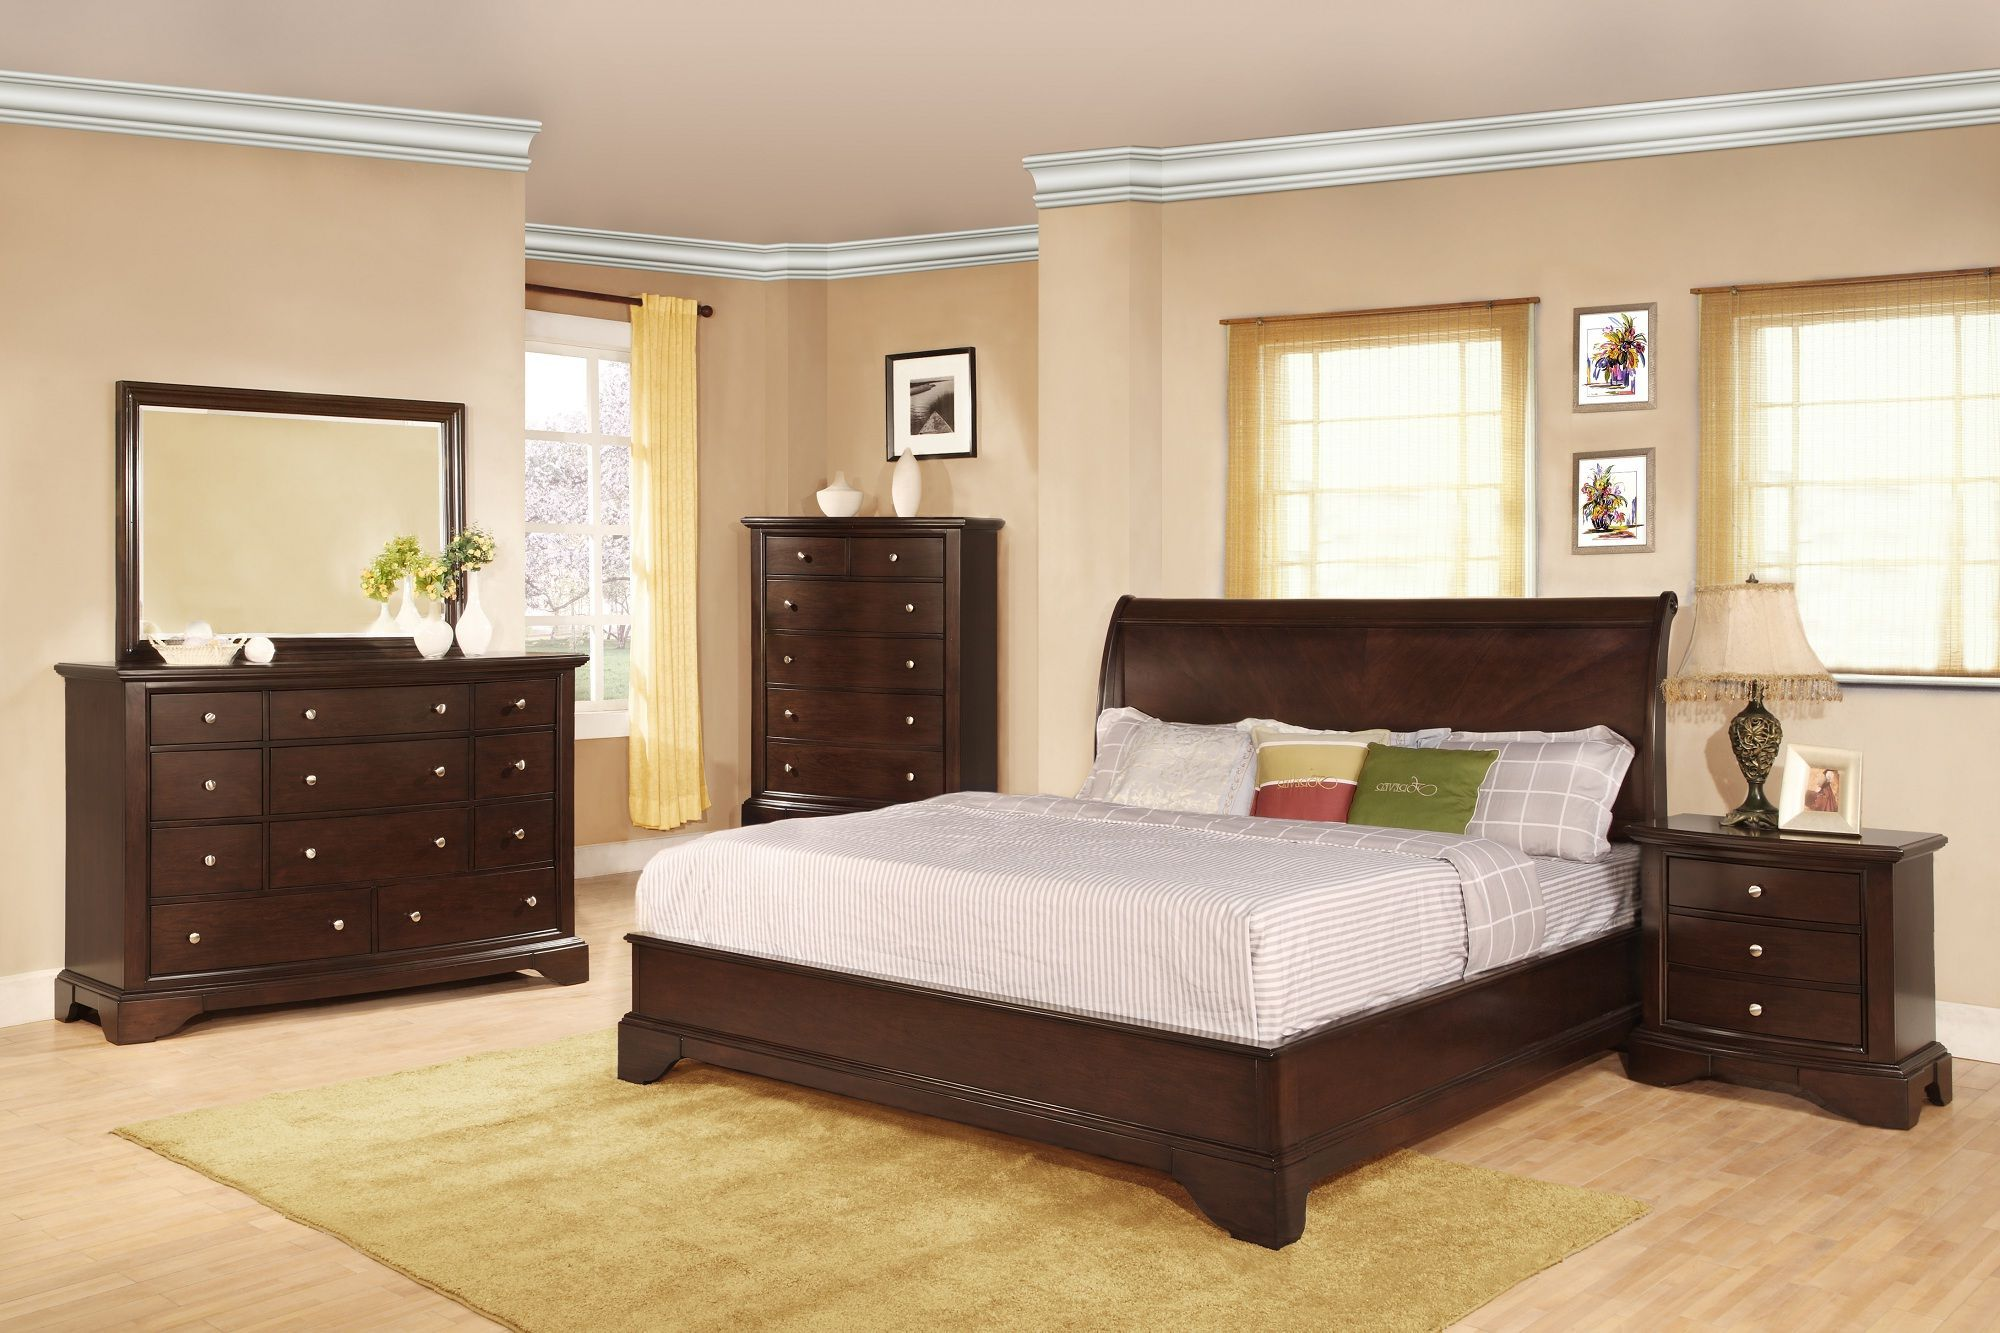 17 Extreme Bedroom Set Modern Contemporary At With Sets Costco Ikea Stunning Better Than Aarons